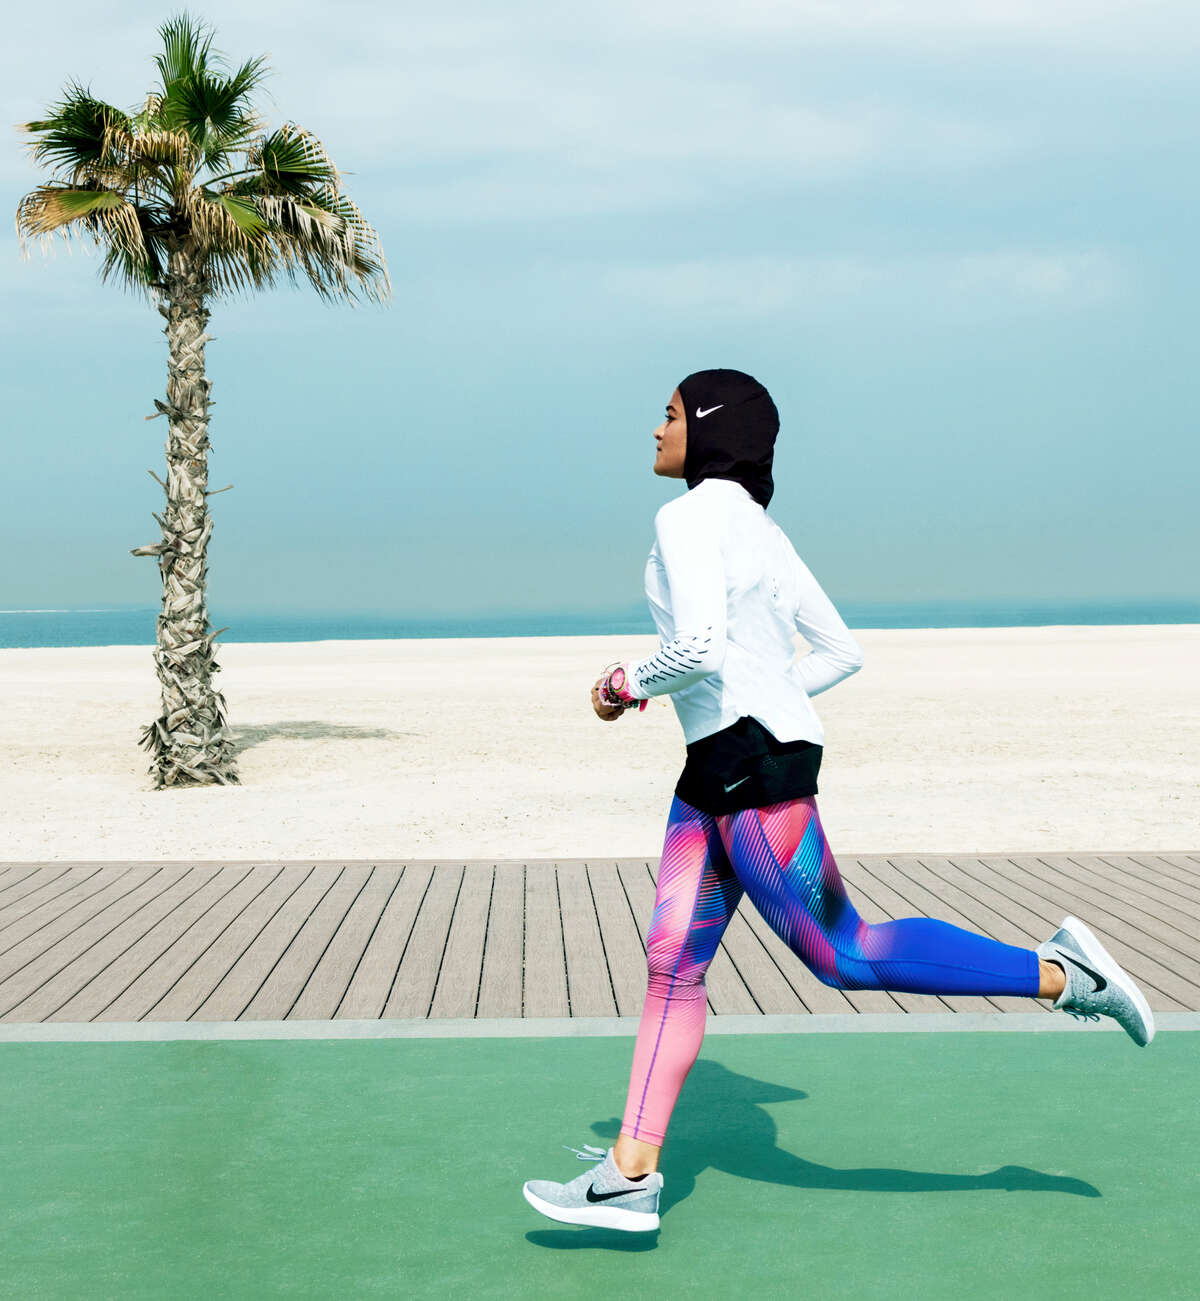 In this undated image provided by Nike, Manal Rostom jogs wearing Nike's new hijab for Muslim female athletes. The pull-on hijab is made of light, stretchy fabric that includes tiny holes for breathability and an elongated back so it will not come untucked. It will come in three colors: black, vast grey and obsidian. Beaverton-based Nike says the hijab will be available for sale next year.